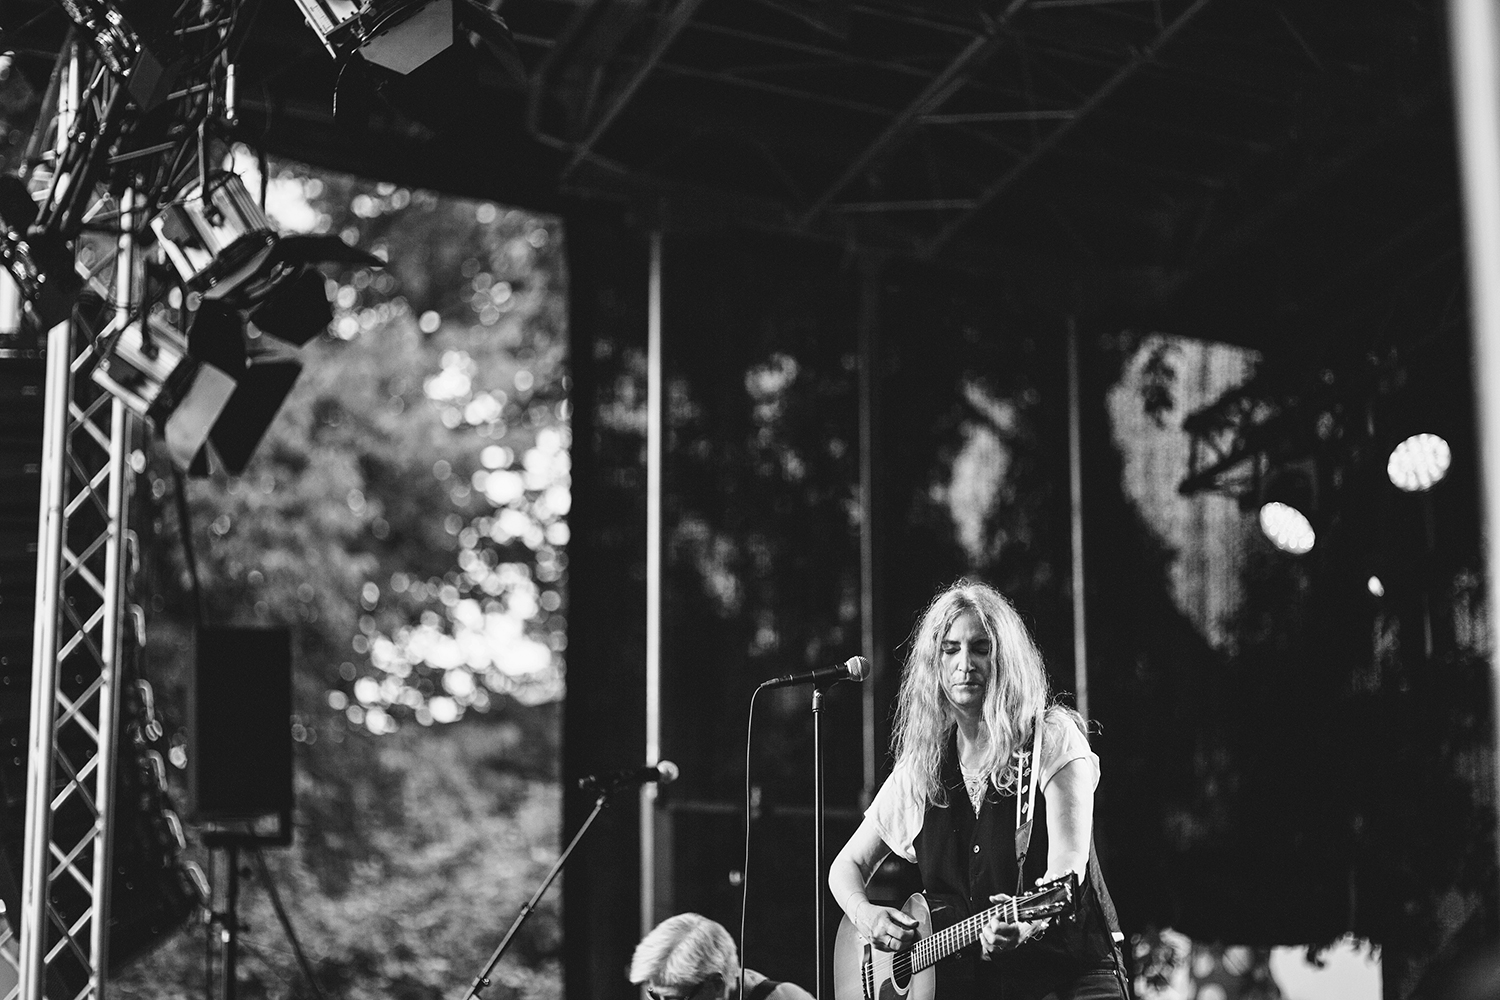 Music and Arts 2016 Patti Smith, copyright 2016 Anna Malmberg 9